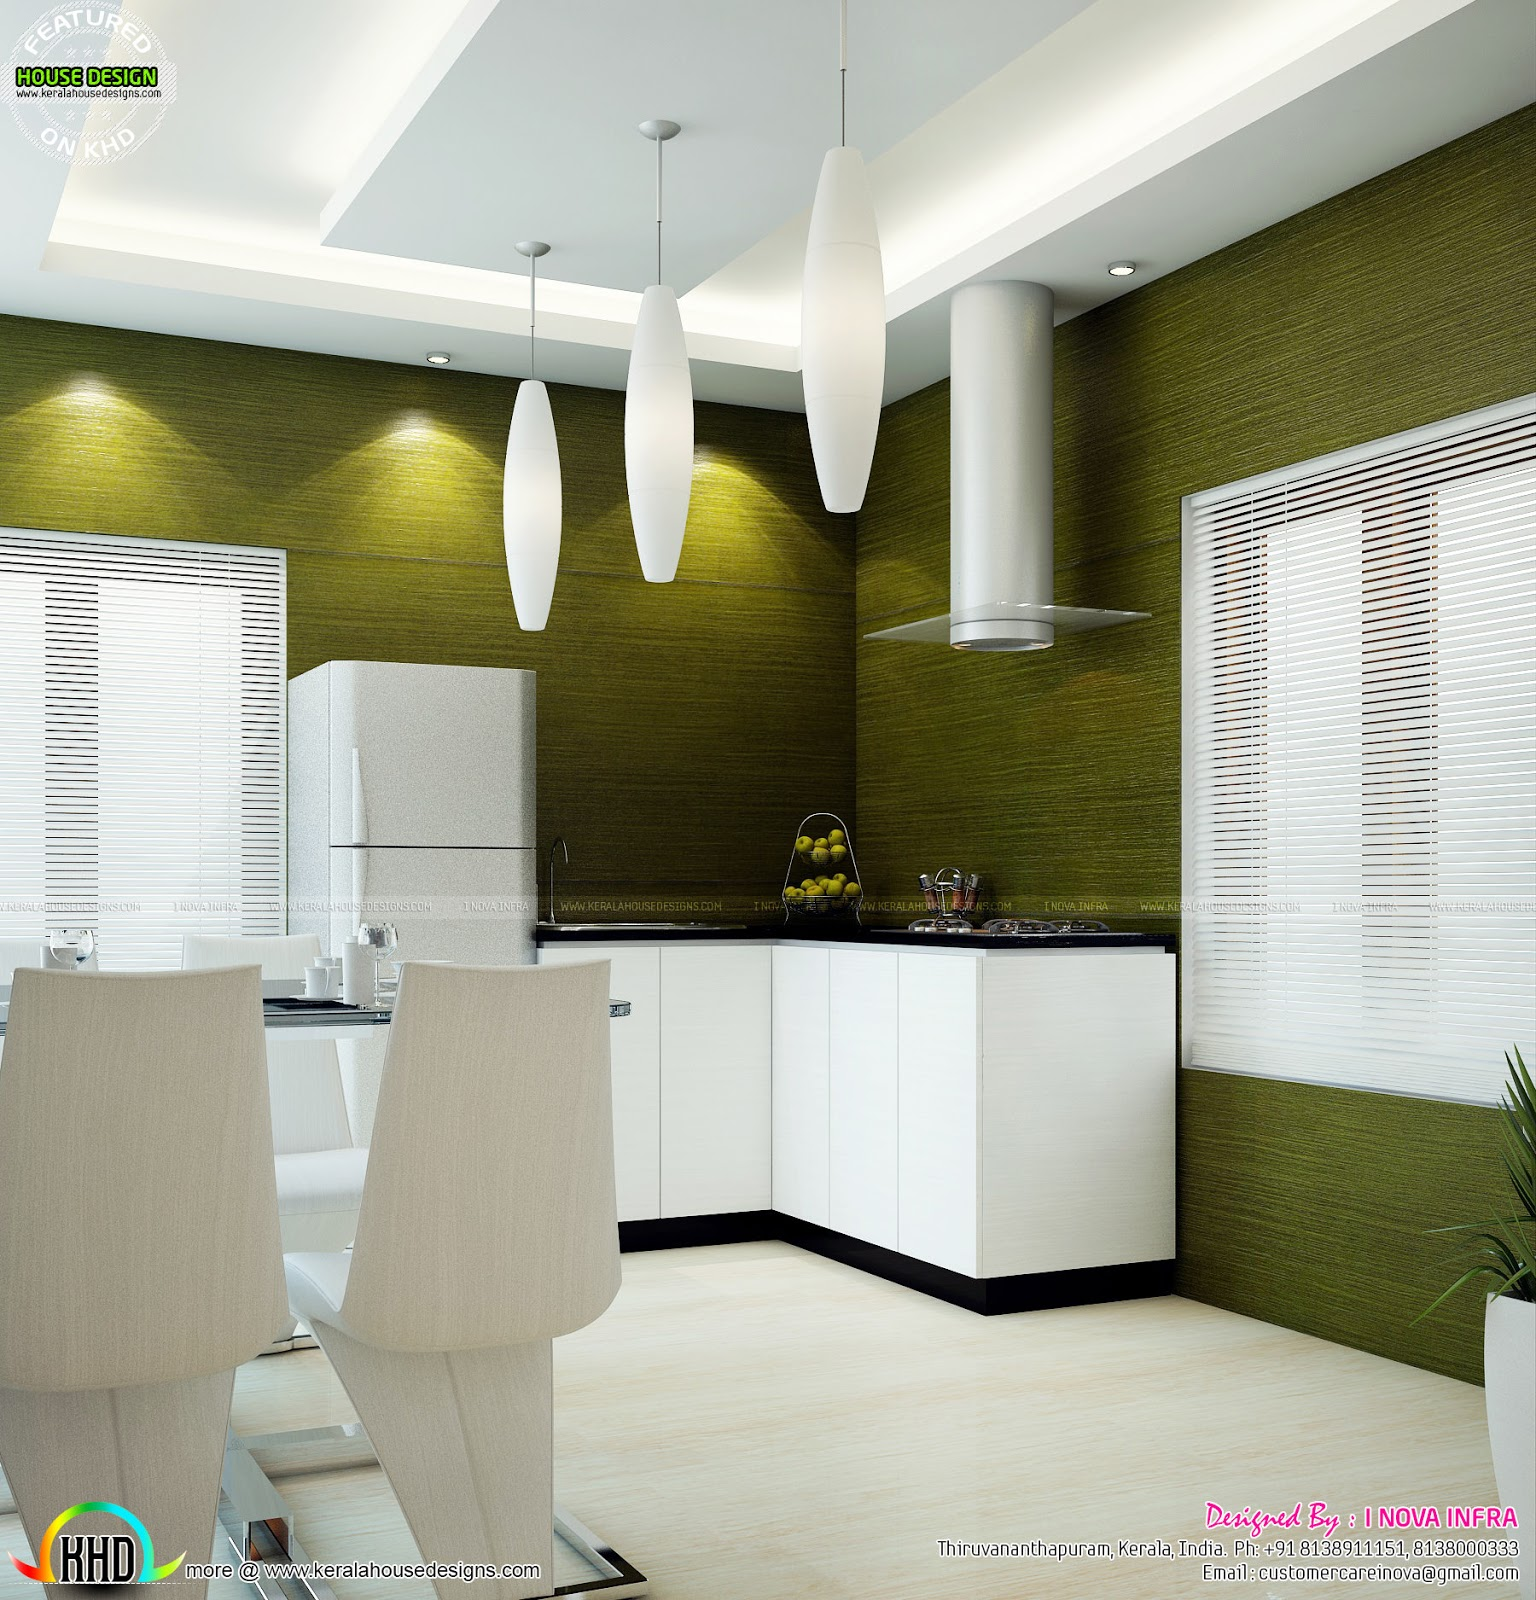 Kerala Home Design And Floor Plans: Home Interior Designs